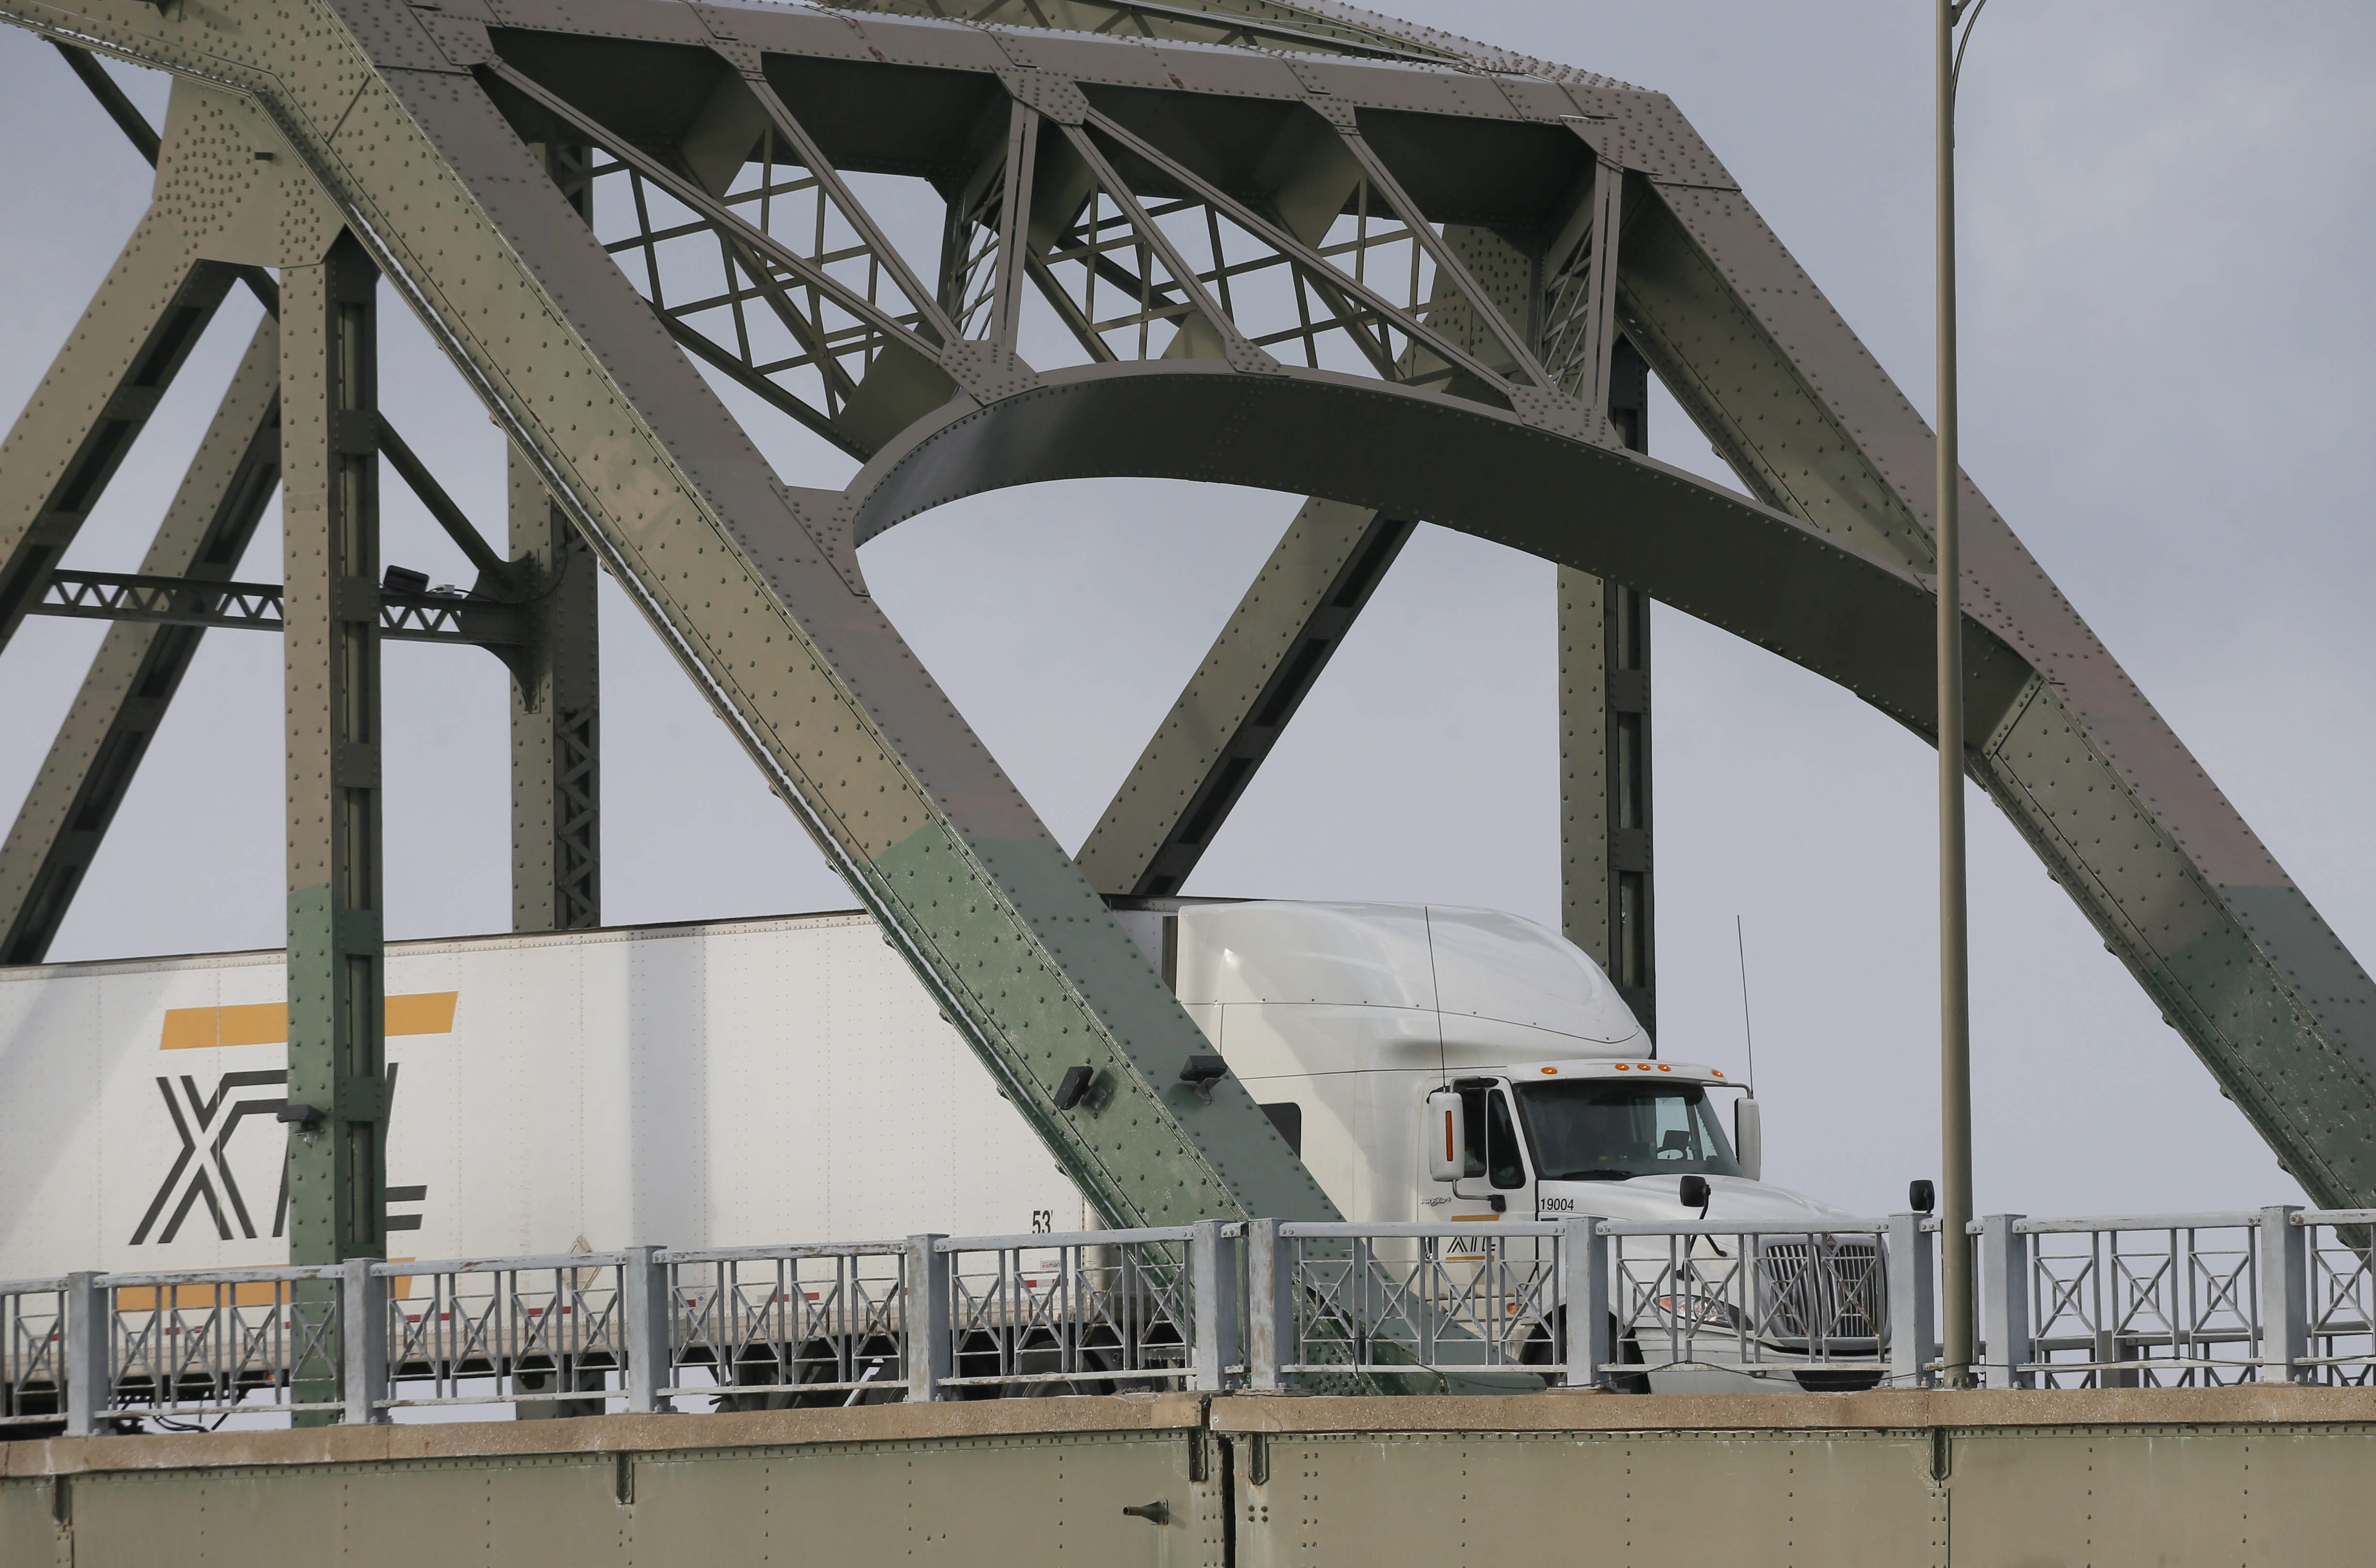 Commercial truck traffic at the Peace Bridge in Buffalo, Tuesday, Jan. 21, 2014.  Photo by Derek Gee